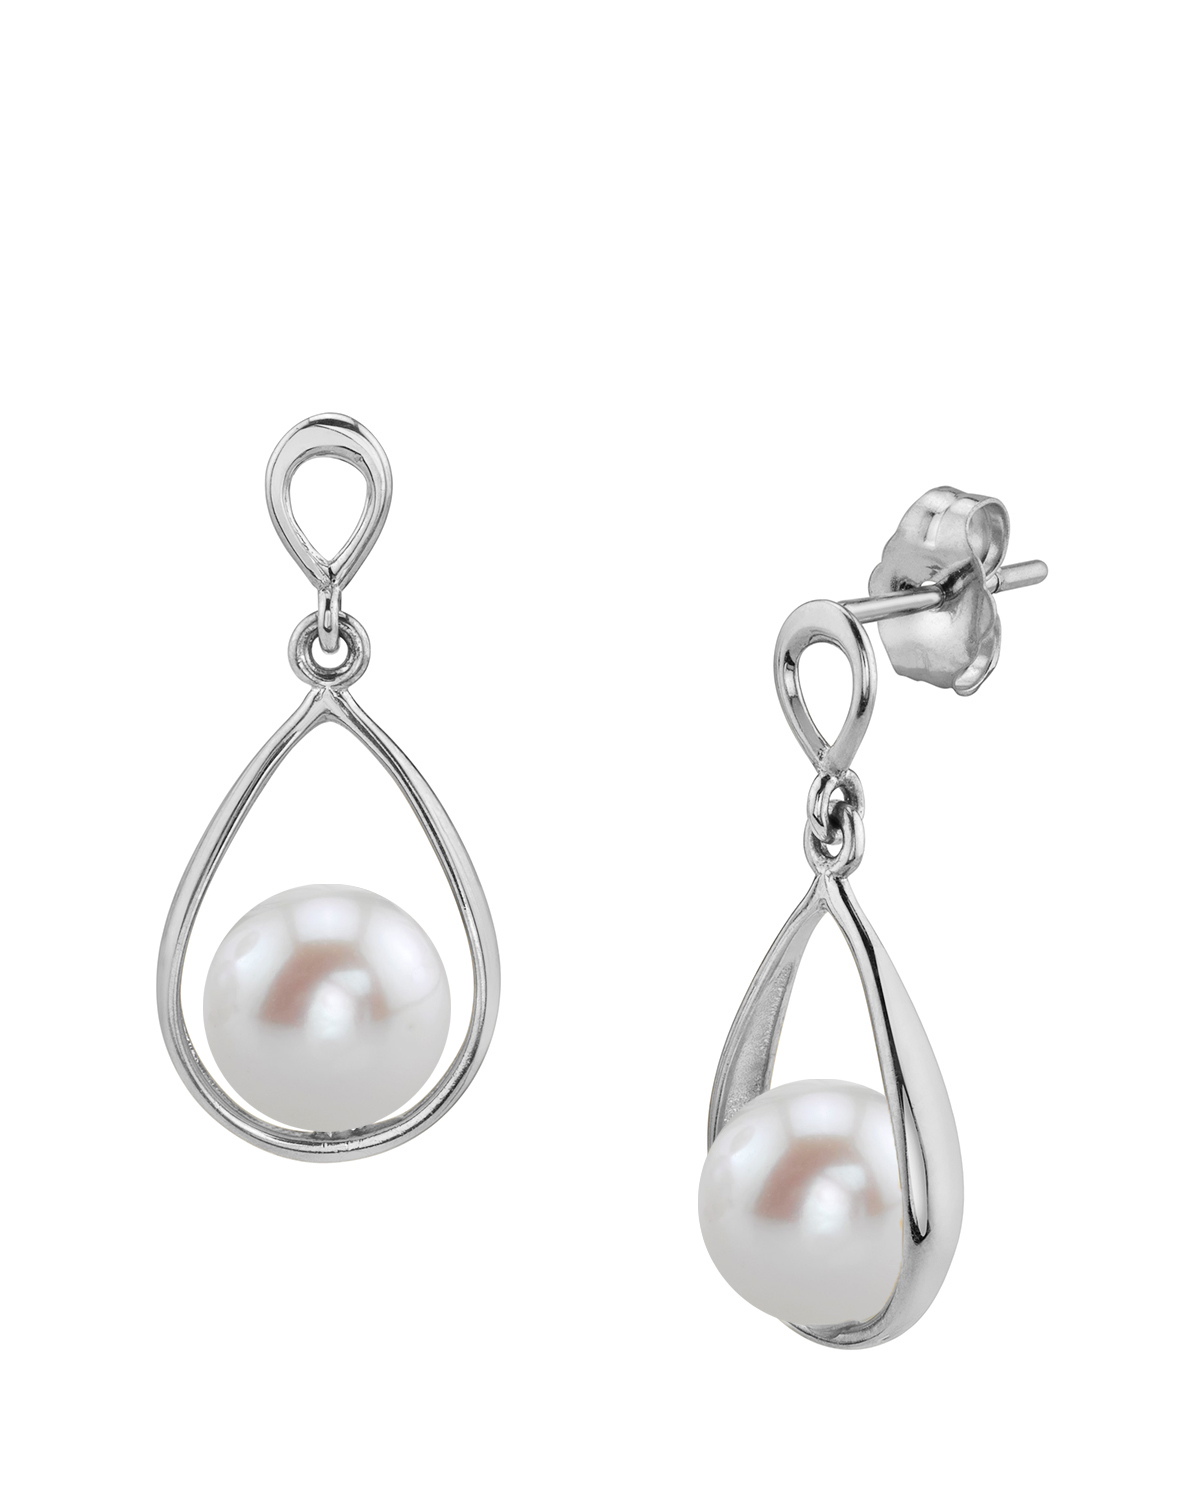 Freshwater Pearl Jess Earrings